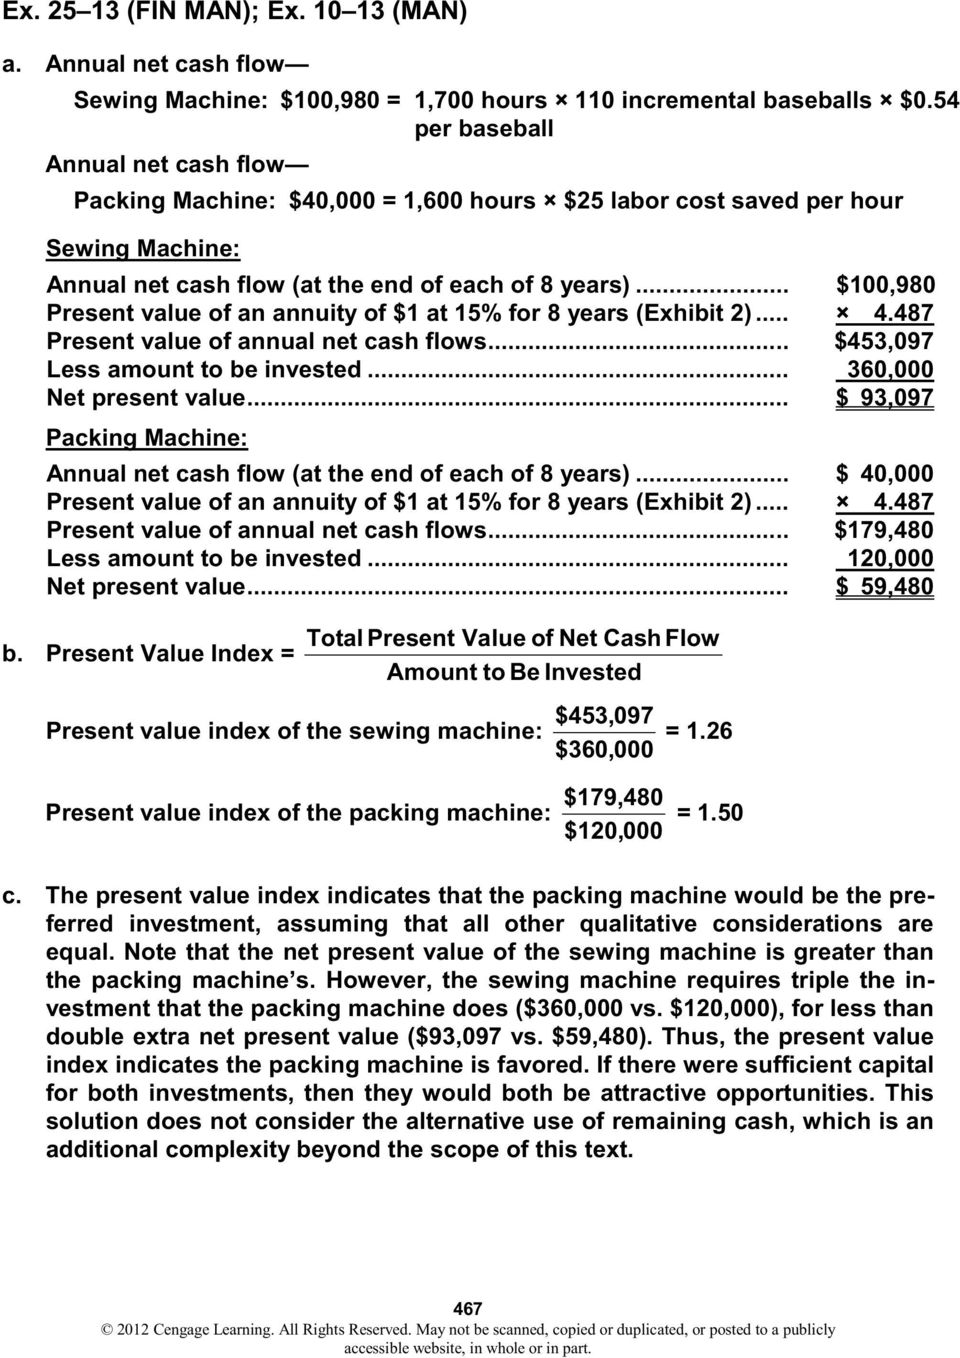 .. $100,980 Present value of an annuity of $1 at 15% for 8 years (Exhibit 2)... 4.487 Present value of annual net cash flows... $453,097 Less amount to be invested... 360,000 Net present value.